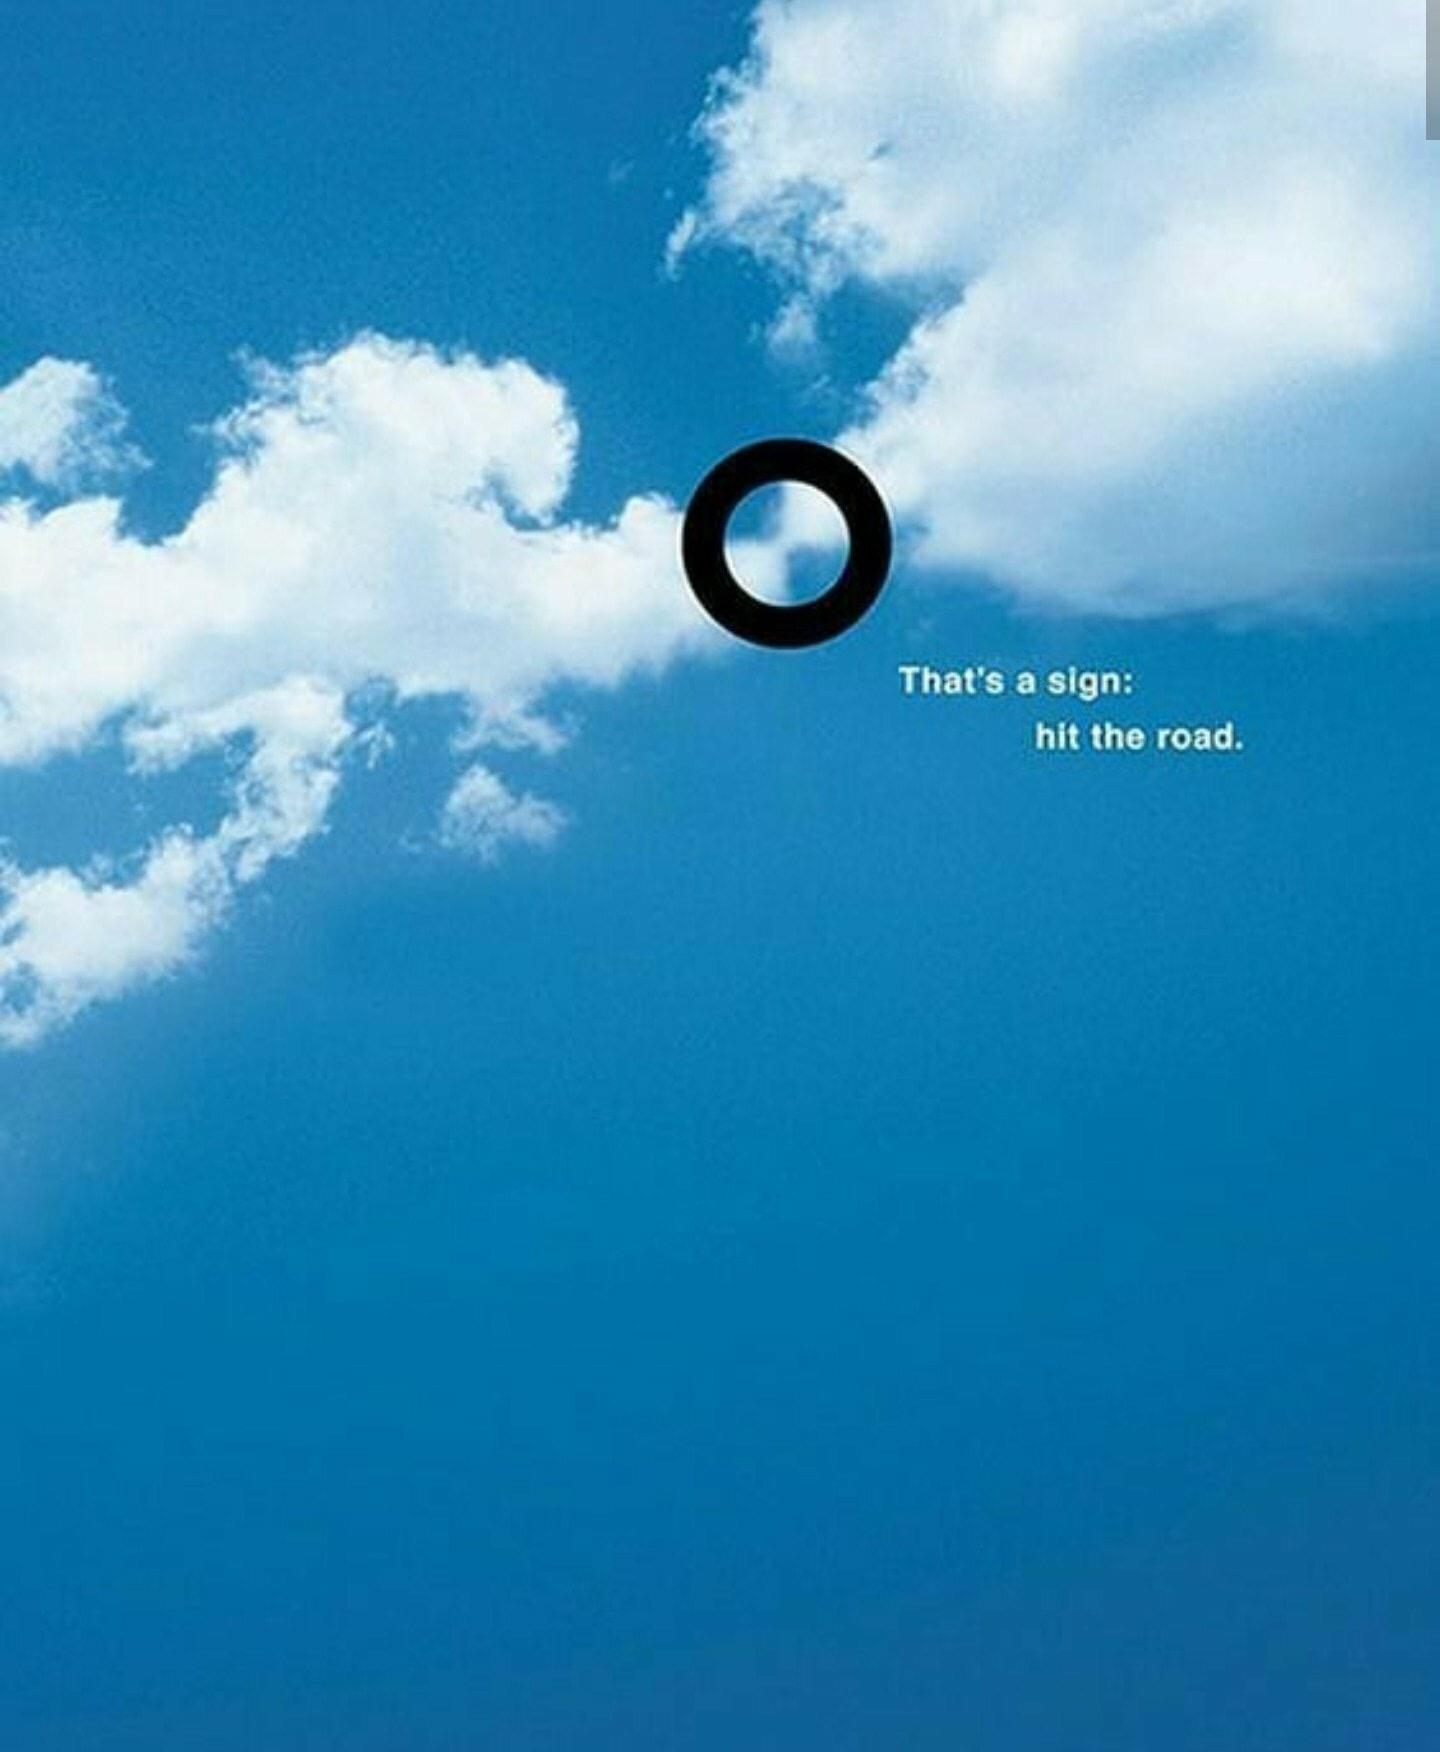 Hit the road digital advertising campaign by BMW